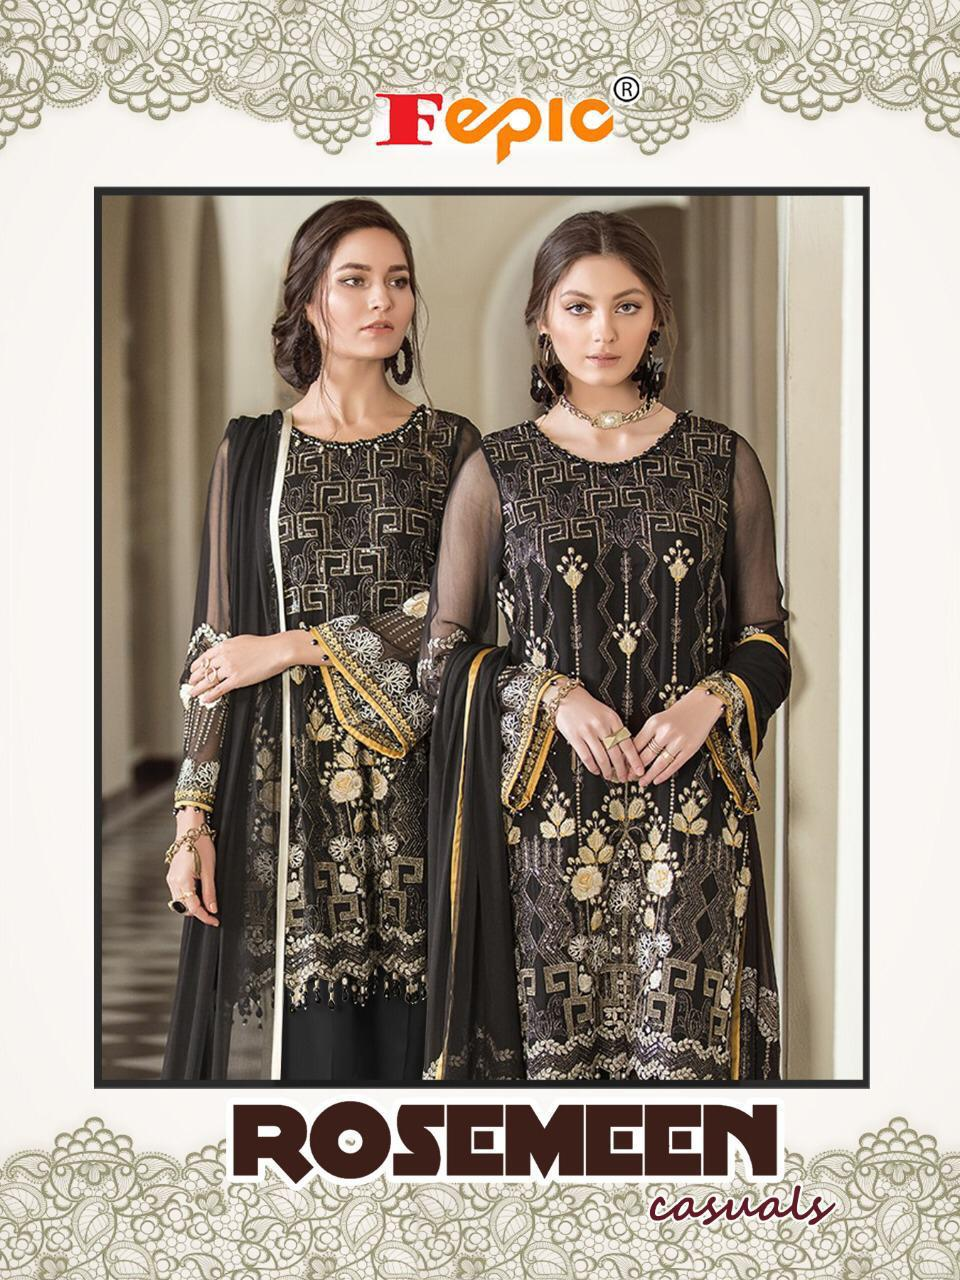 829ea4f11c FEPIC ROSEMEEN CASUALS PAKISTANI SUITS WHOLESALE IN HYDERABAD